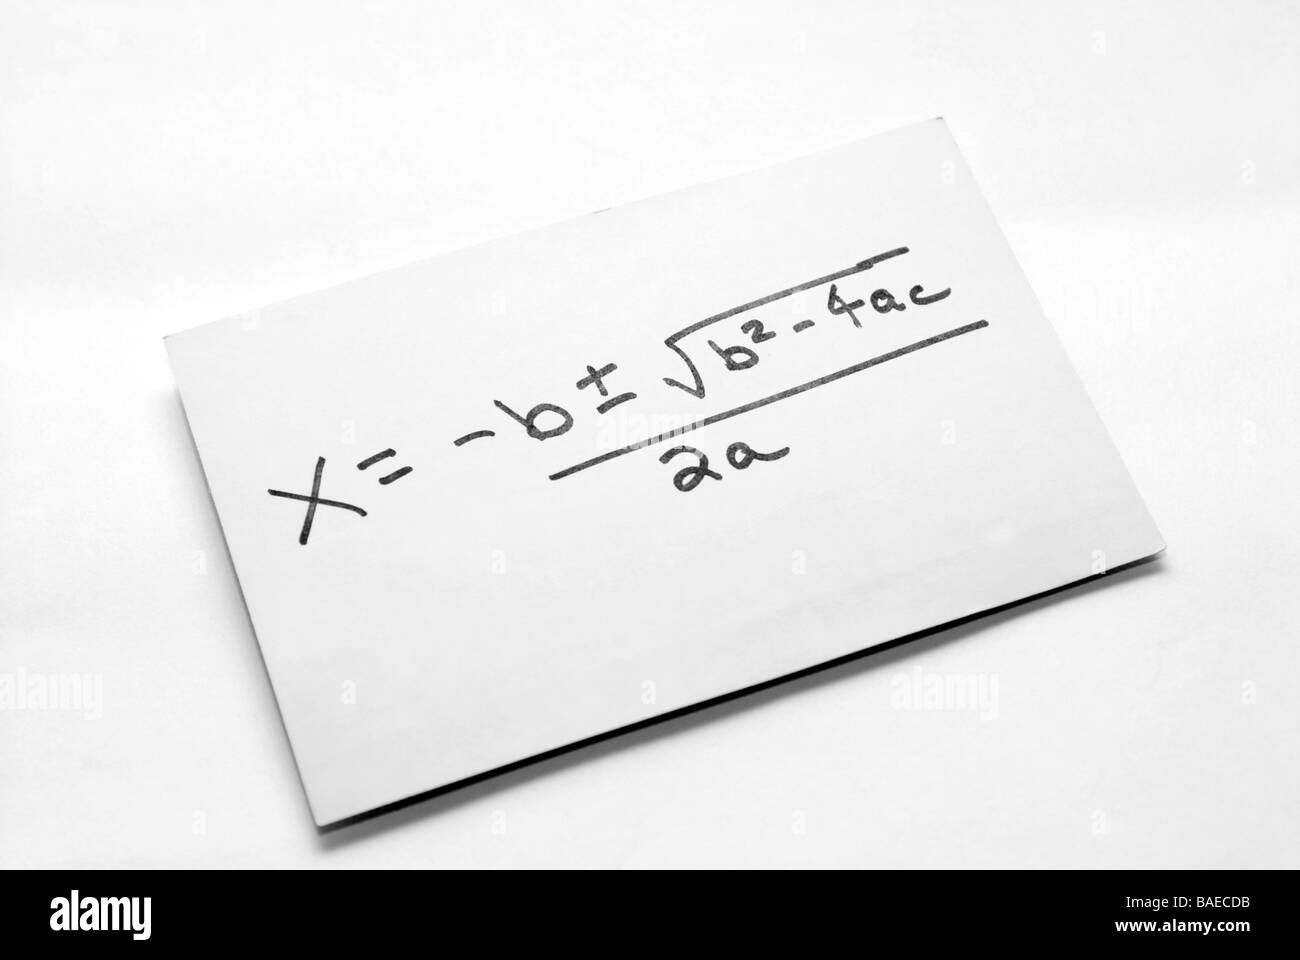 A quadratic equation written by a student as a study aid Richard B Levine - Stock Image